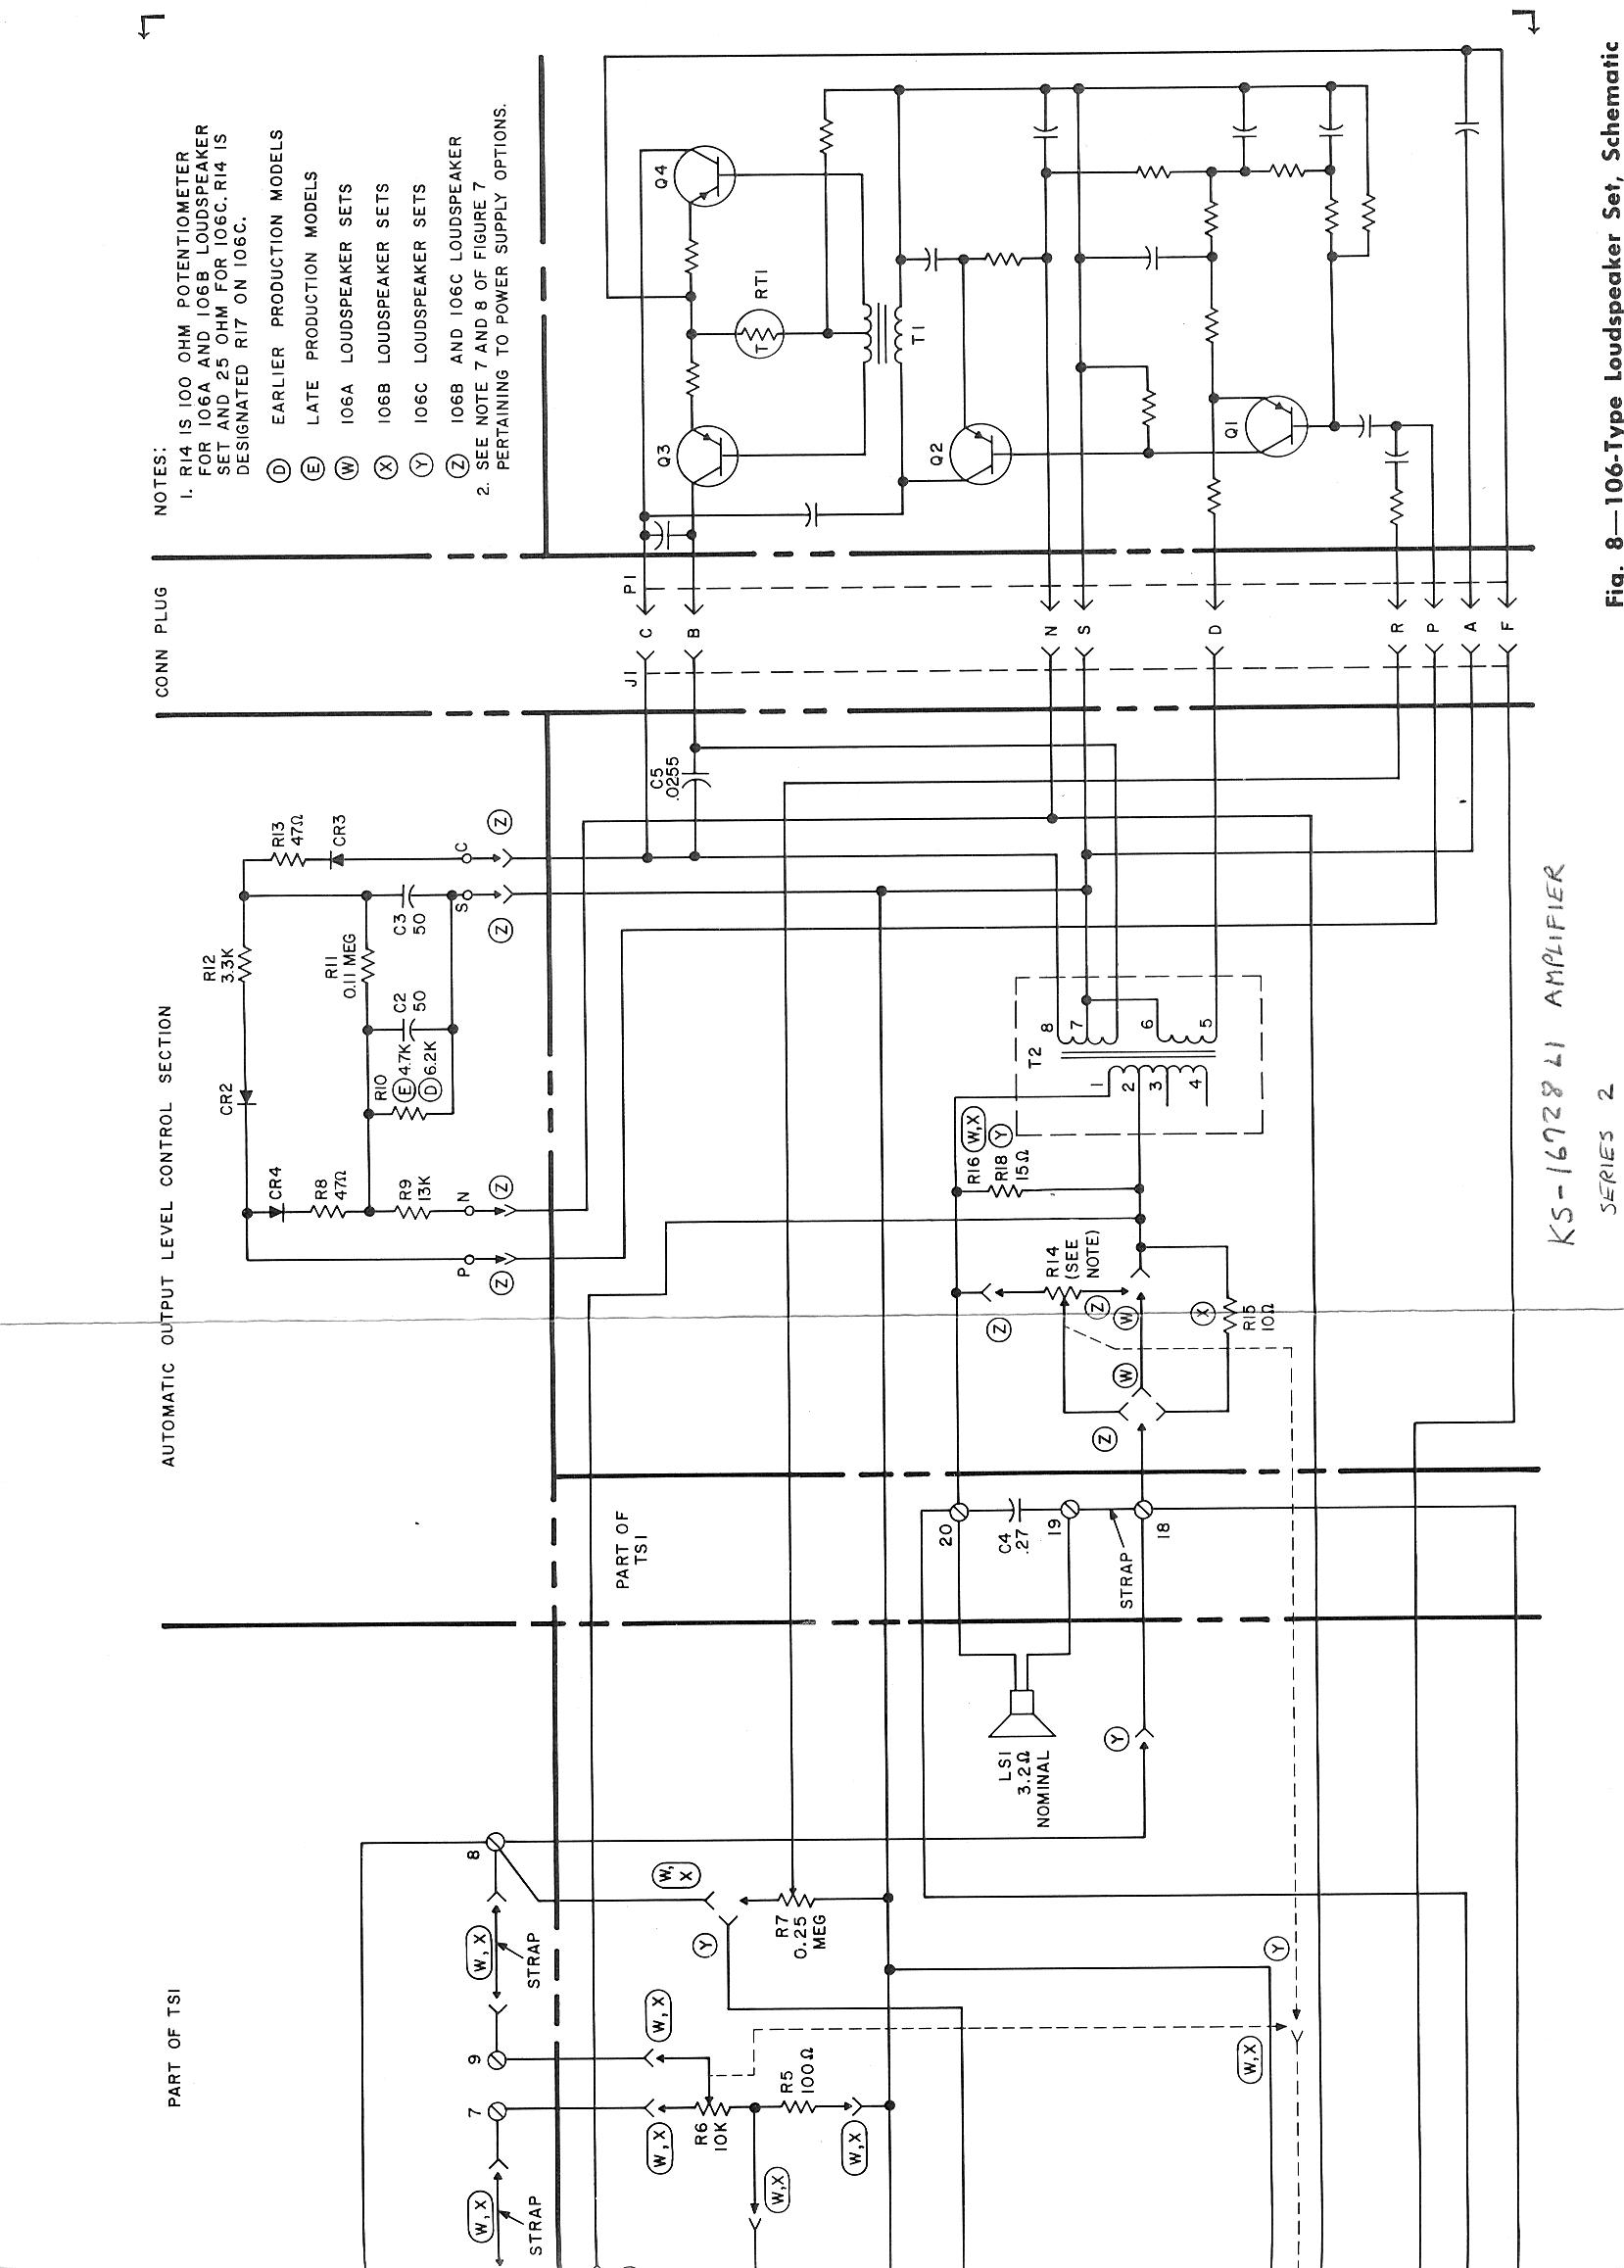 Telephone Technical References Figure 132 Simplified Logic Diagram Of The Printer Adapter Left Half Schematic Right